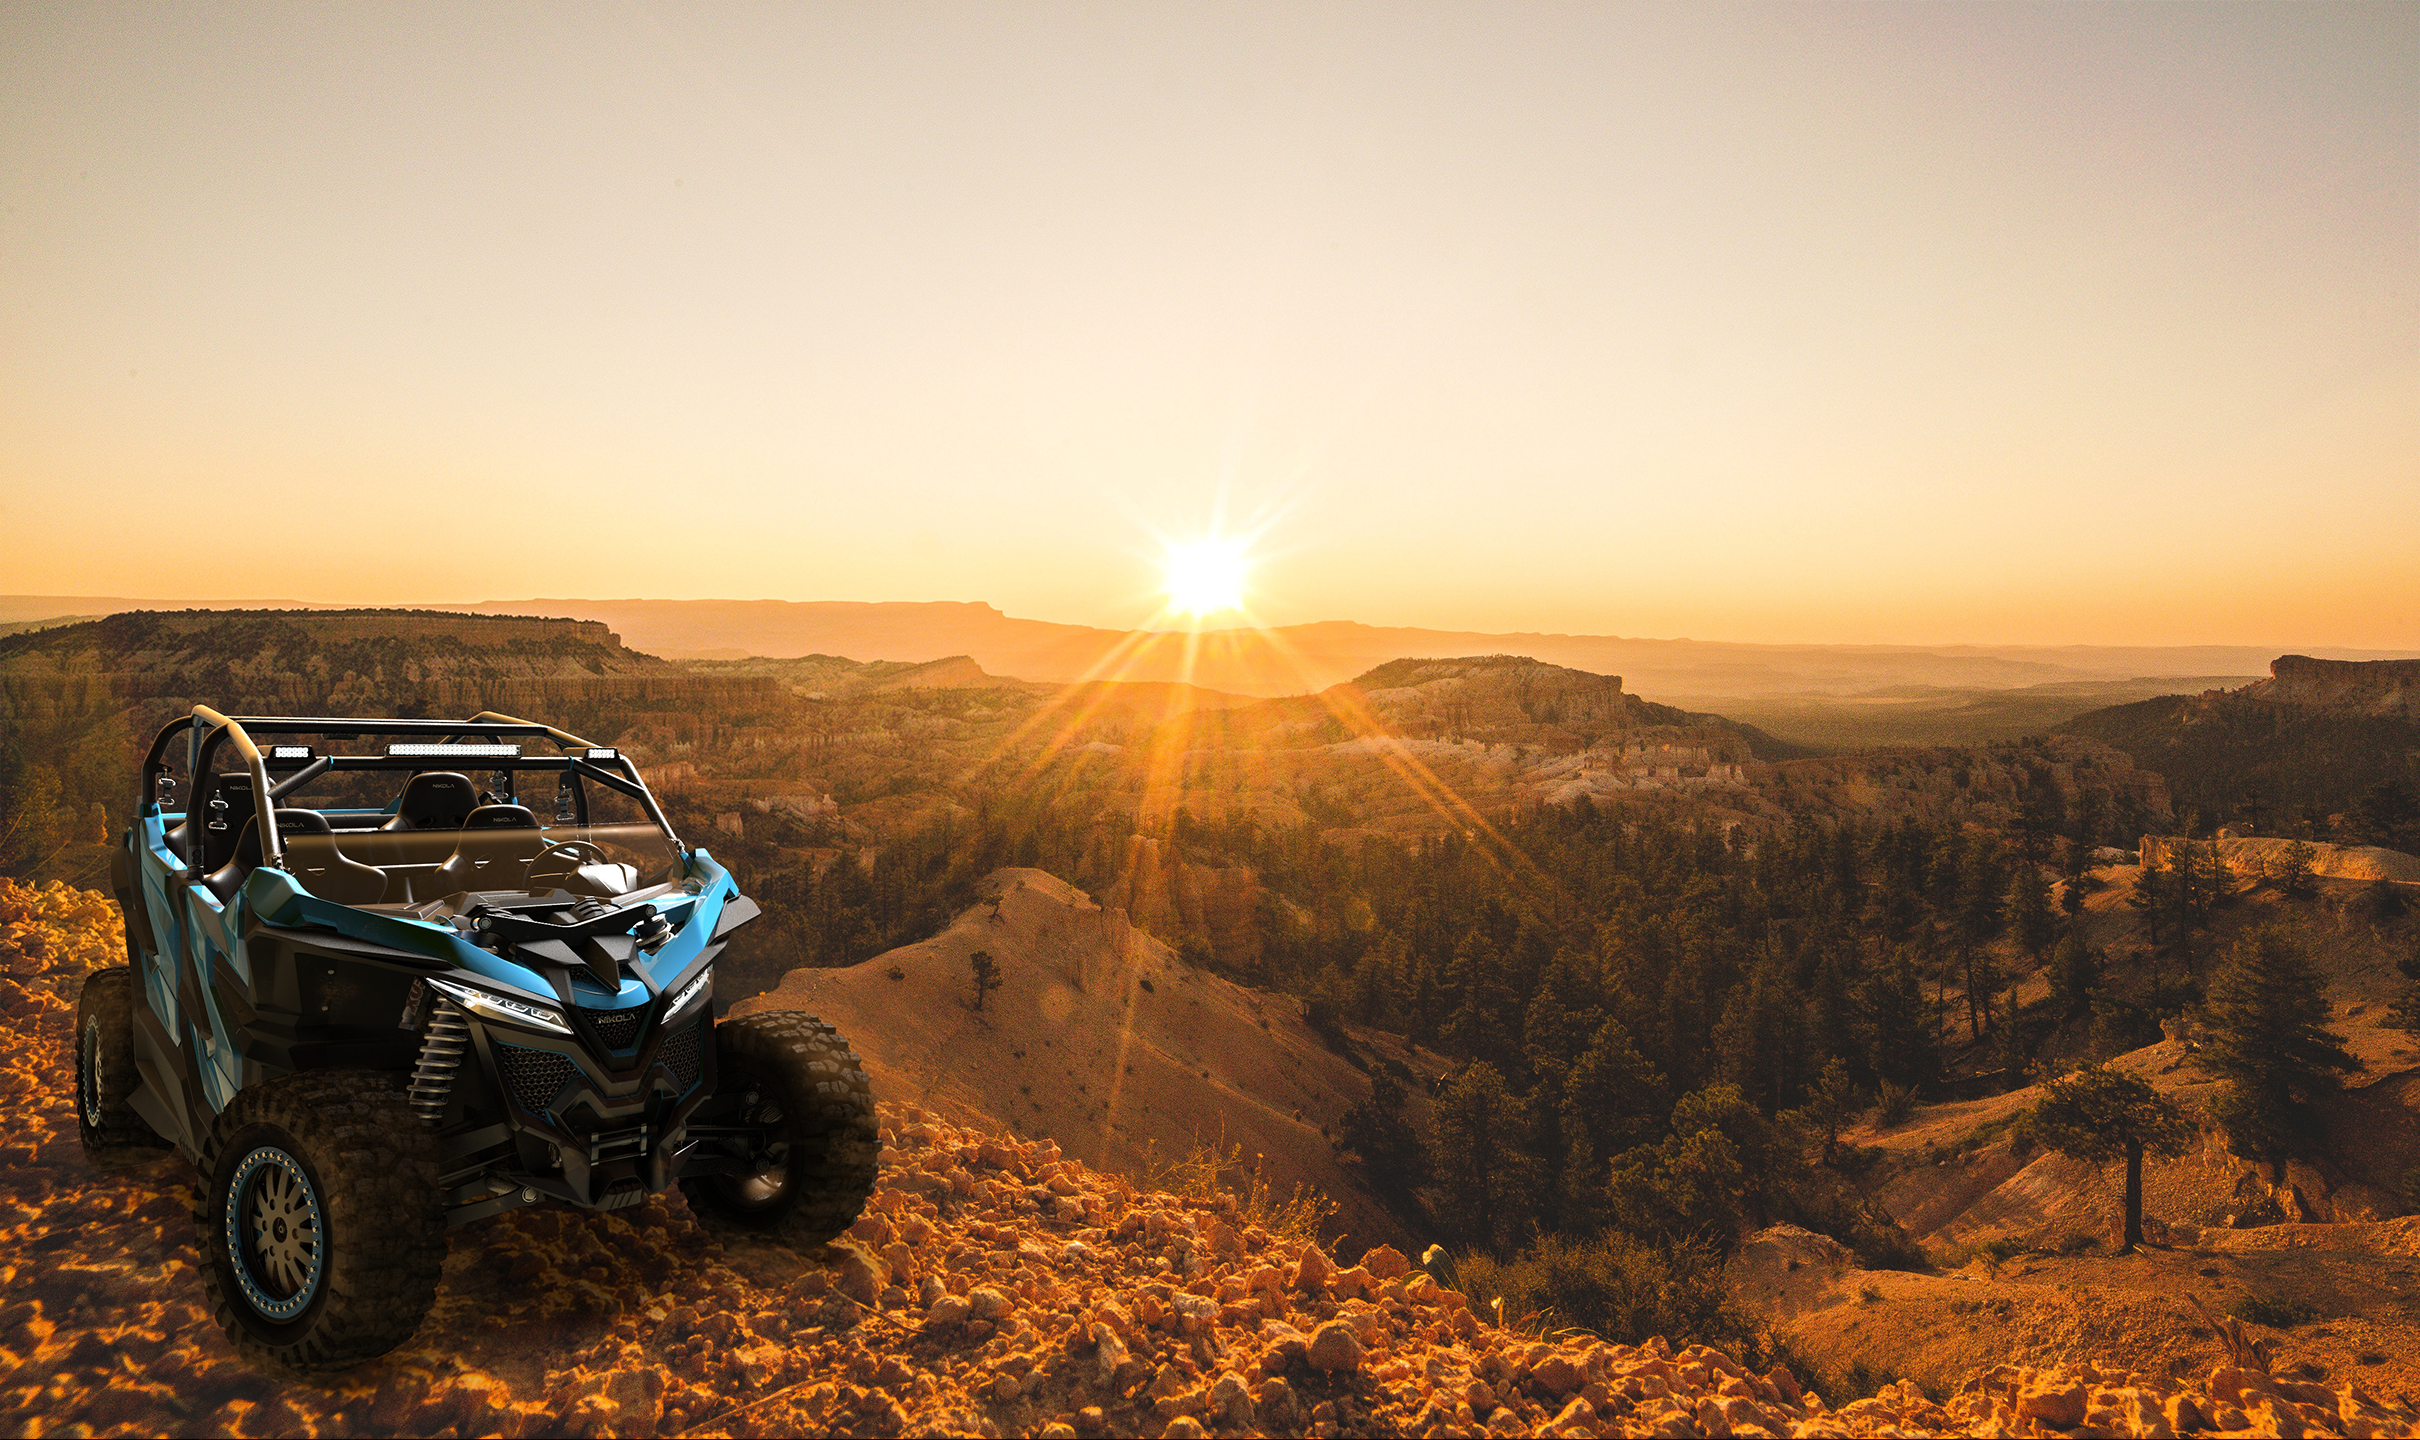 Nikola Motor launches its all-electric UTV with up to 150